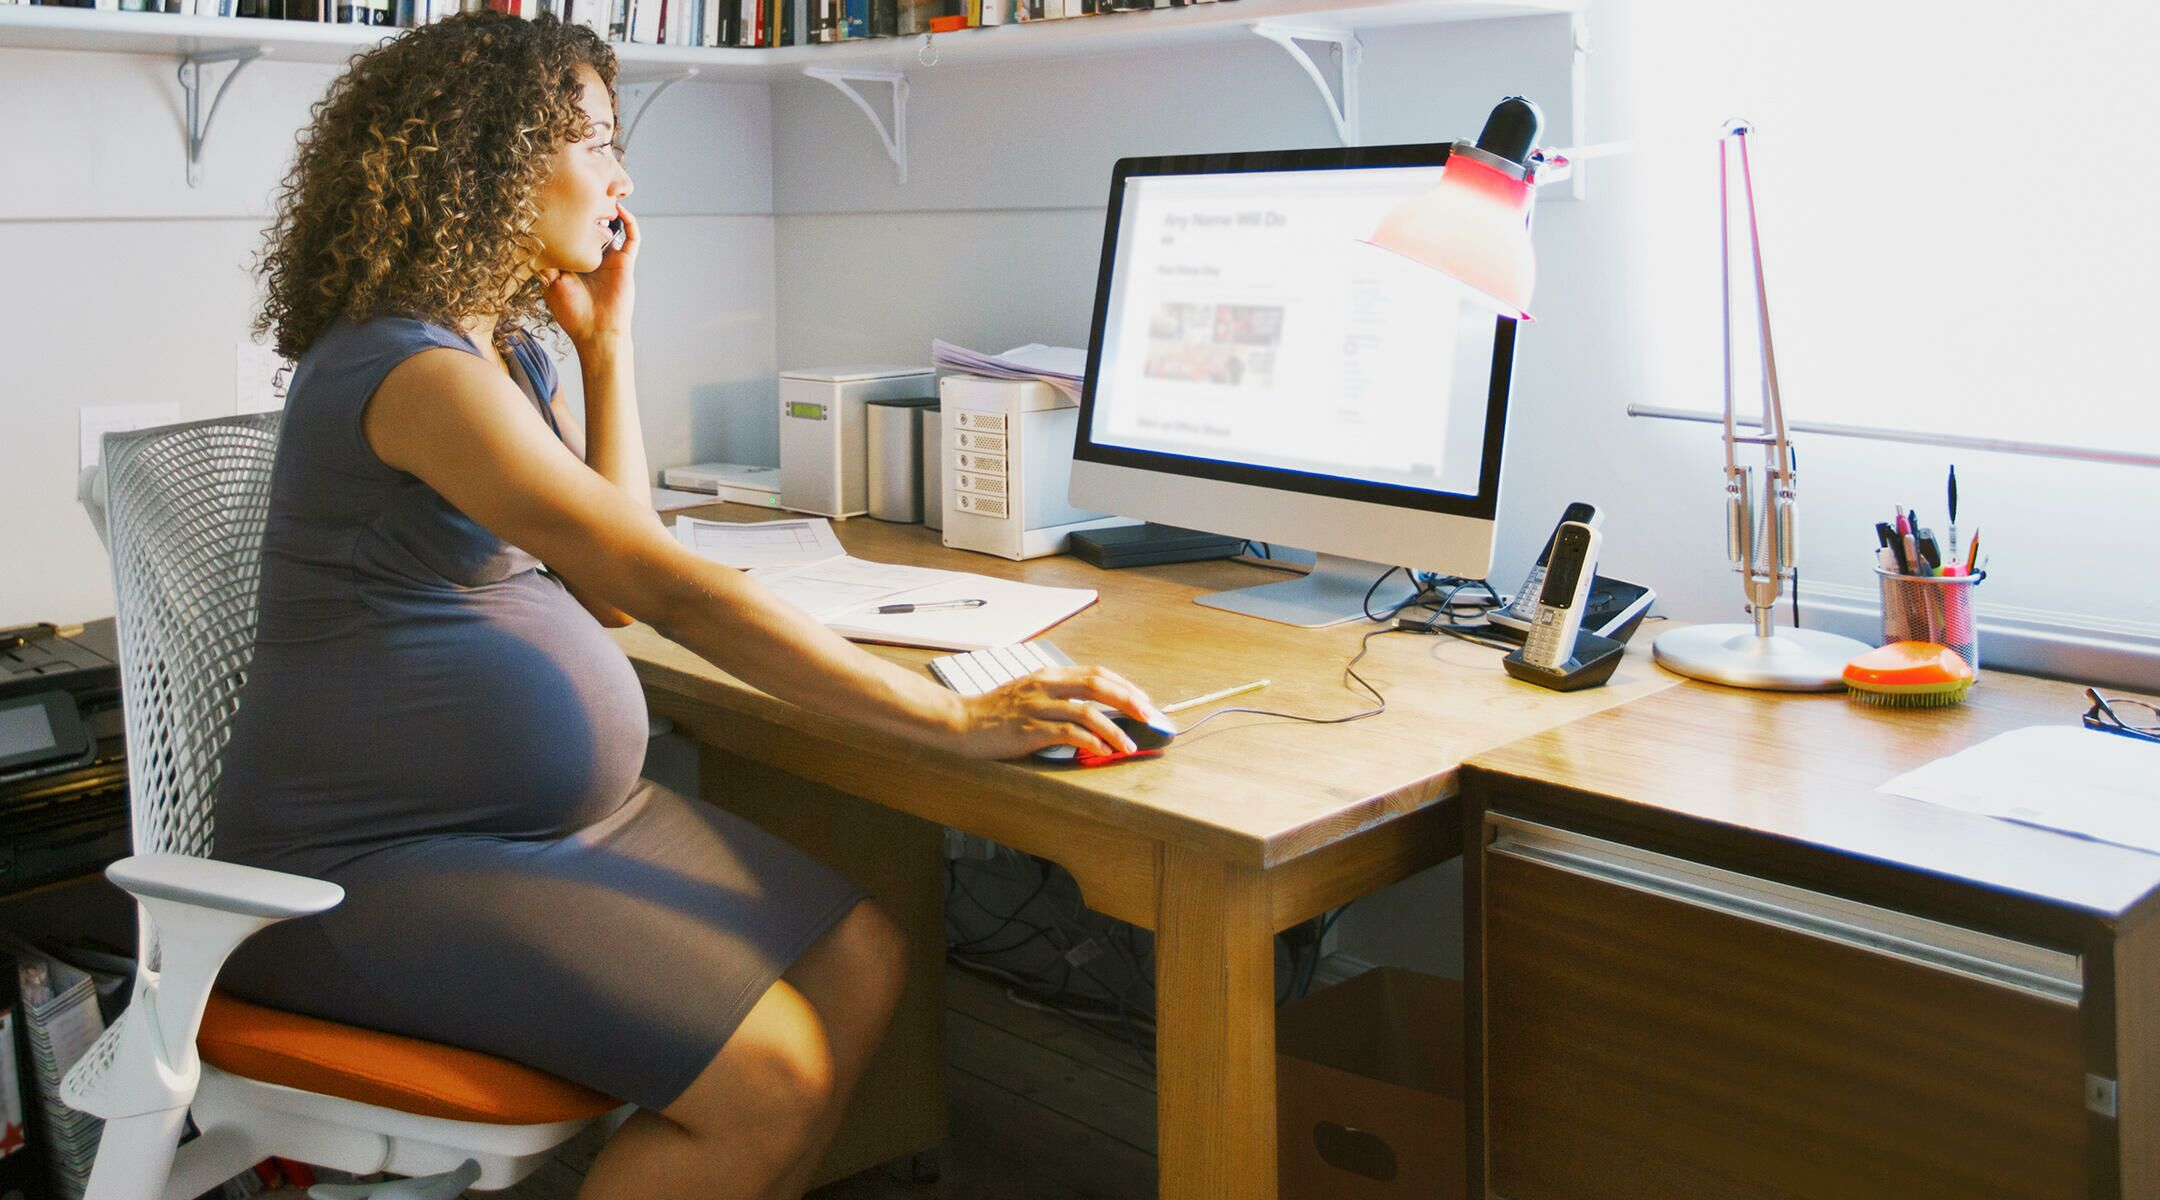 5 Simple Ways to Squeeze a Prenatal Workout Into Your Workday